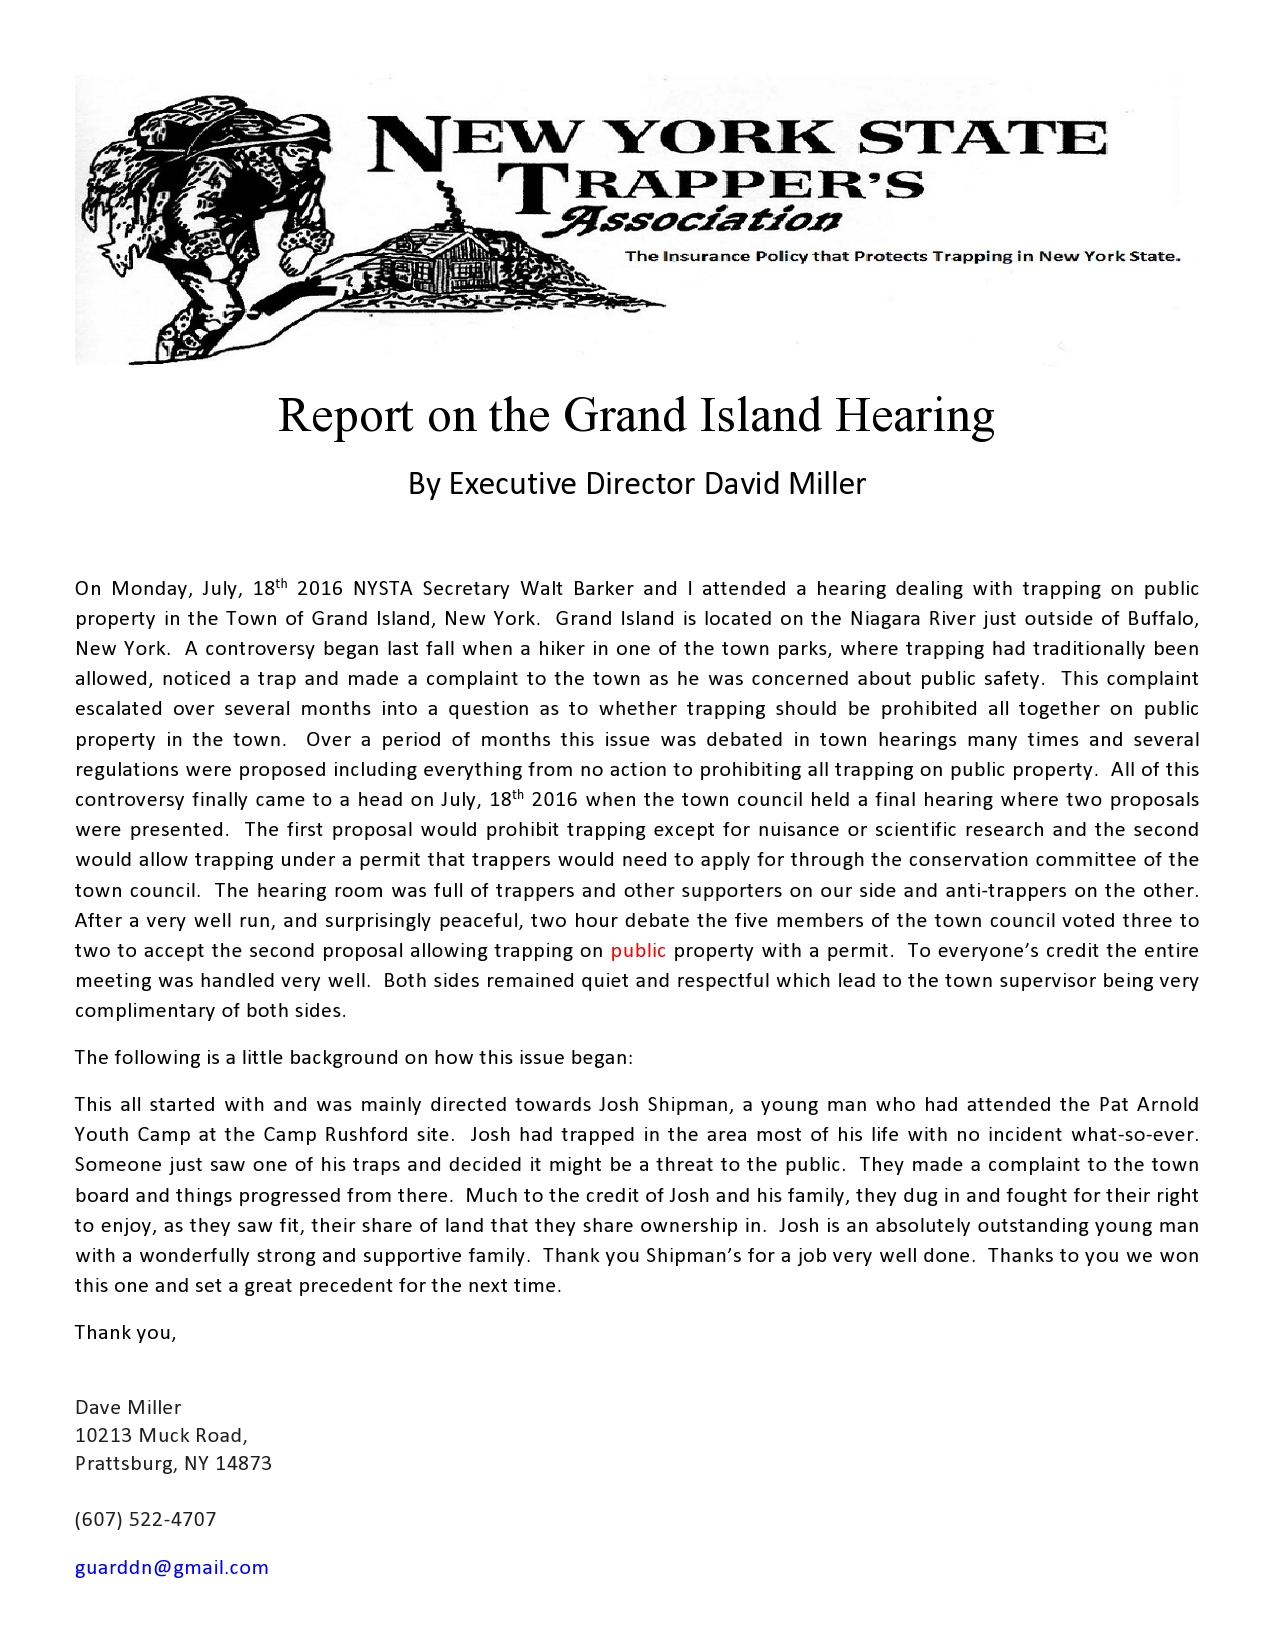 Report on Hearing at Grand Island Revised-page0001